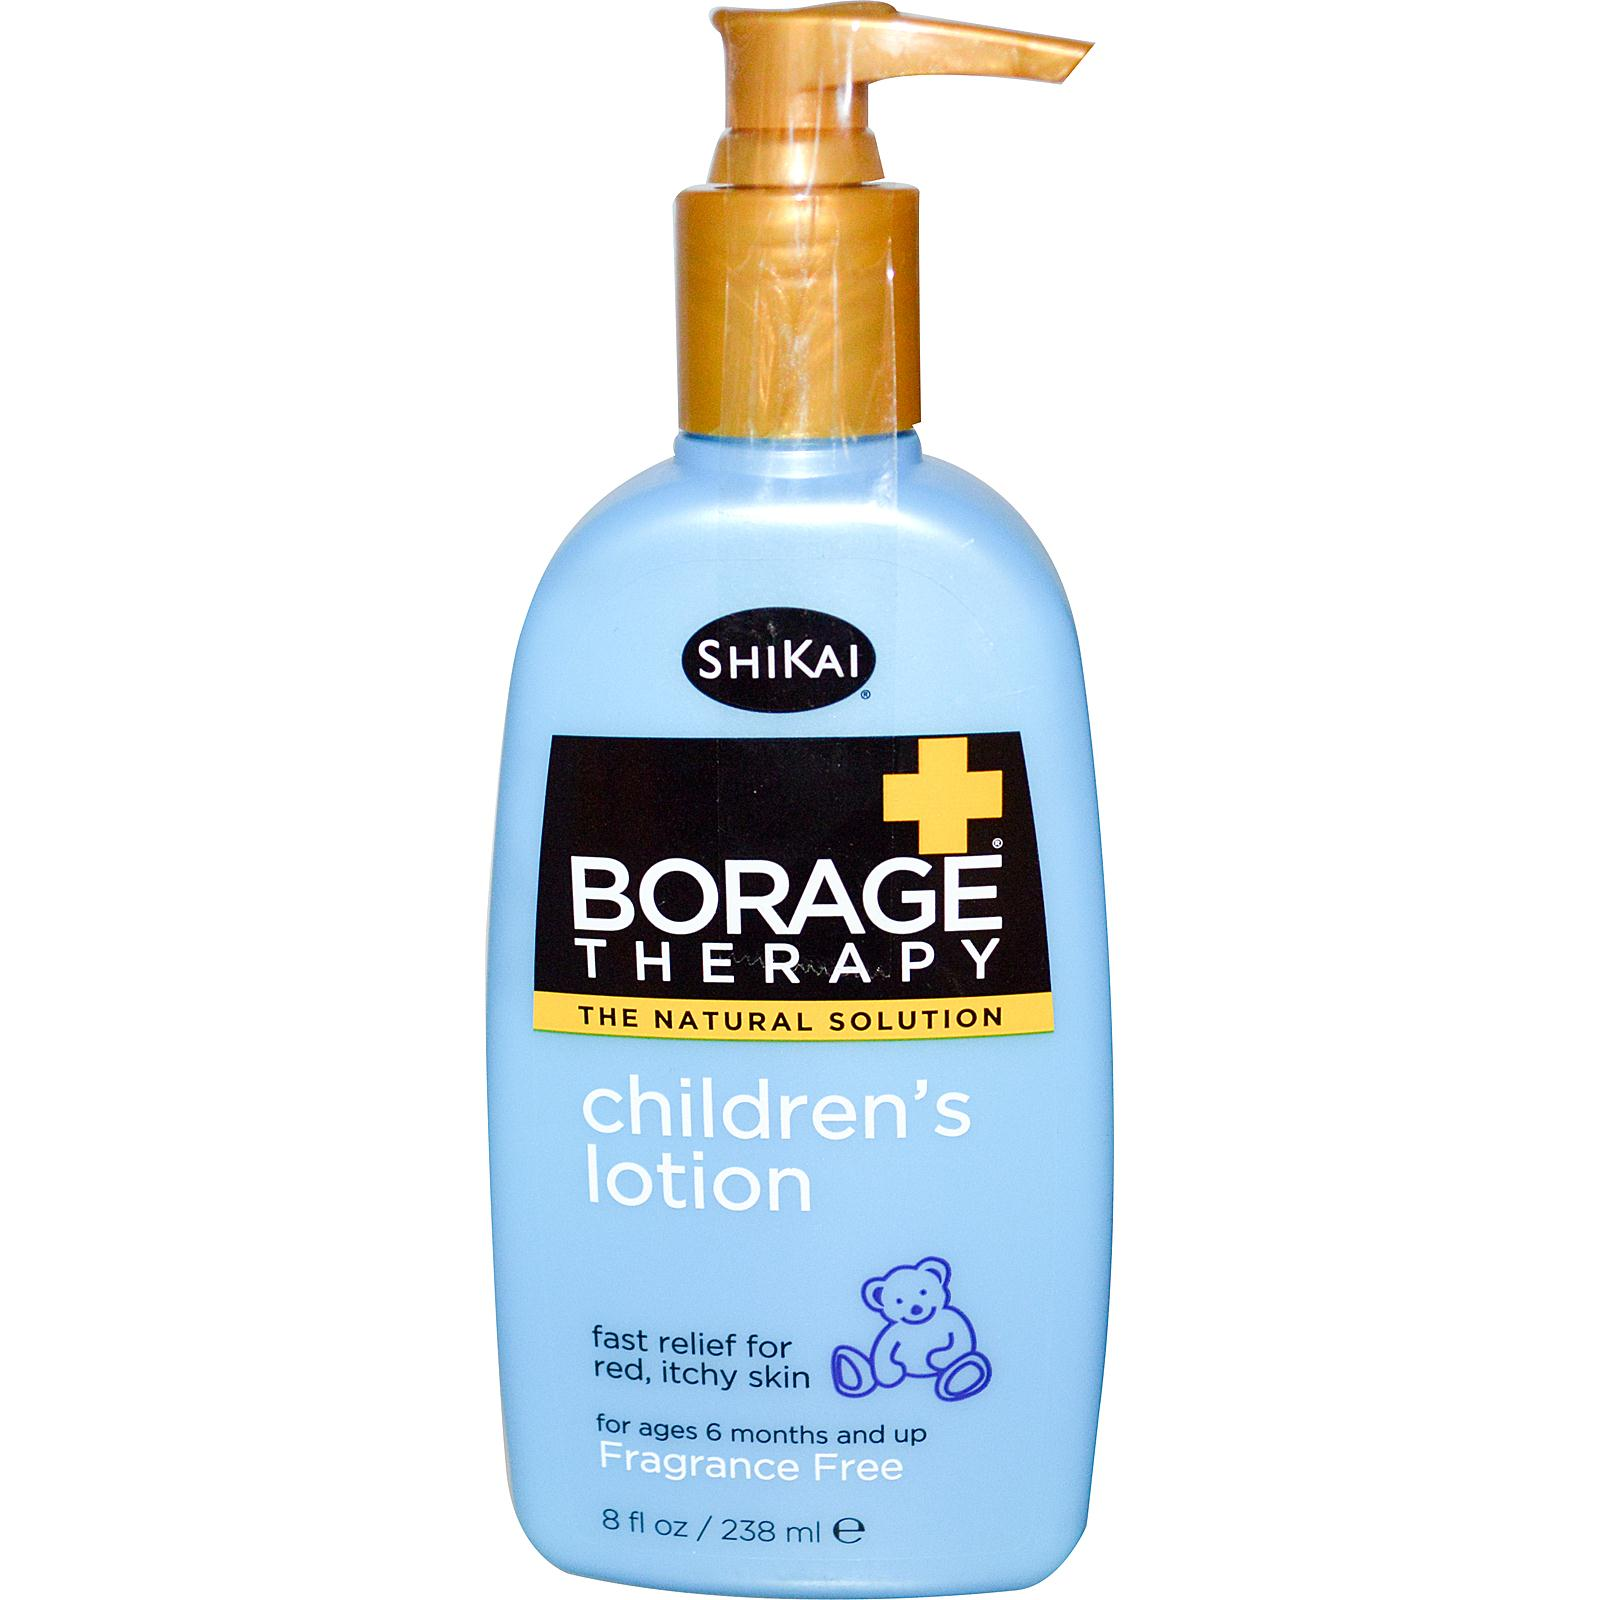 Shikai, Borage Therapy, Children's Lotion, Fragrance Free, 8 fl oz (238 ml).jpg